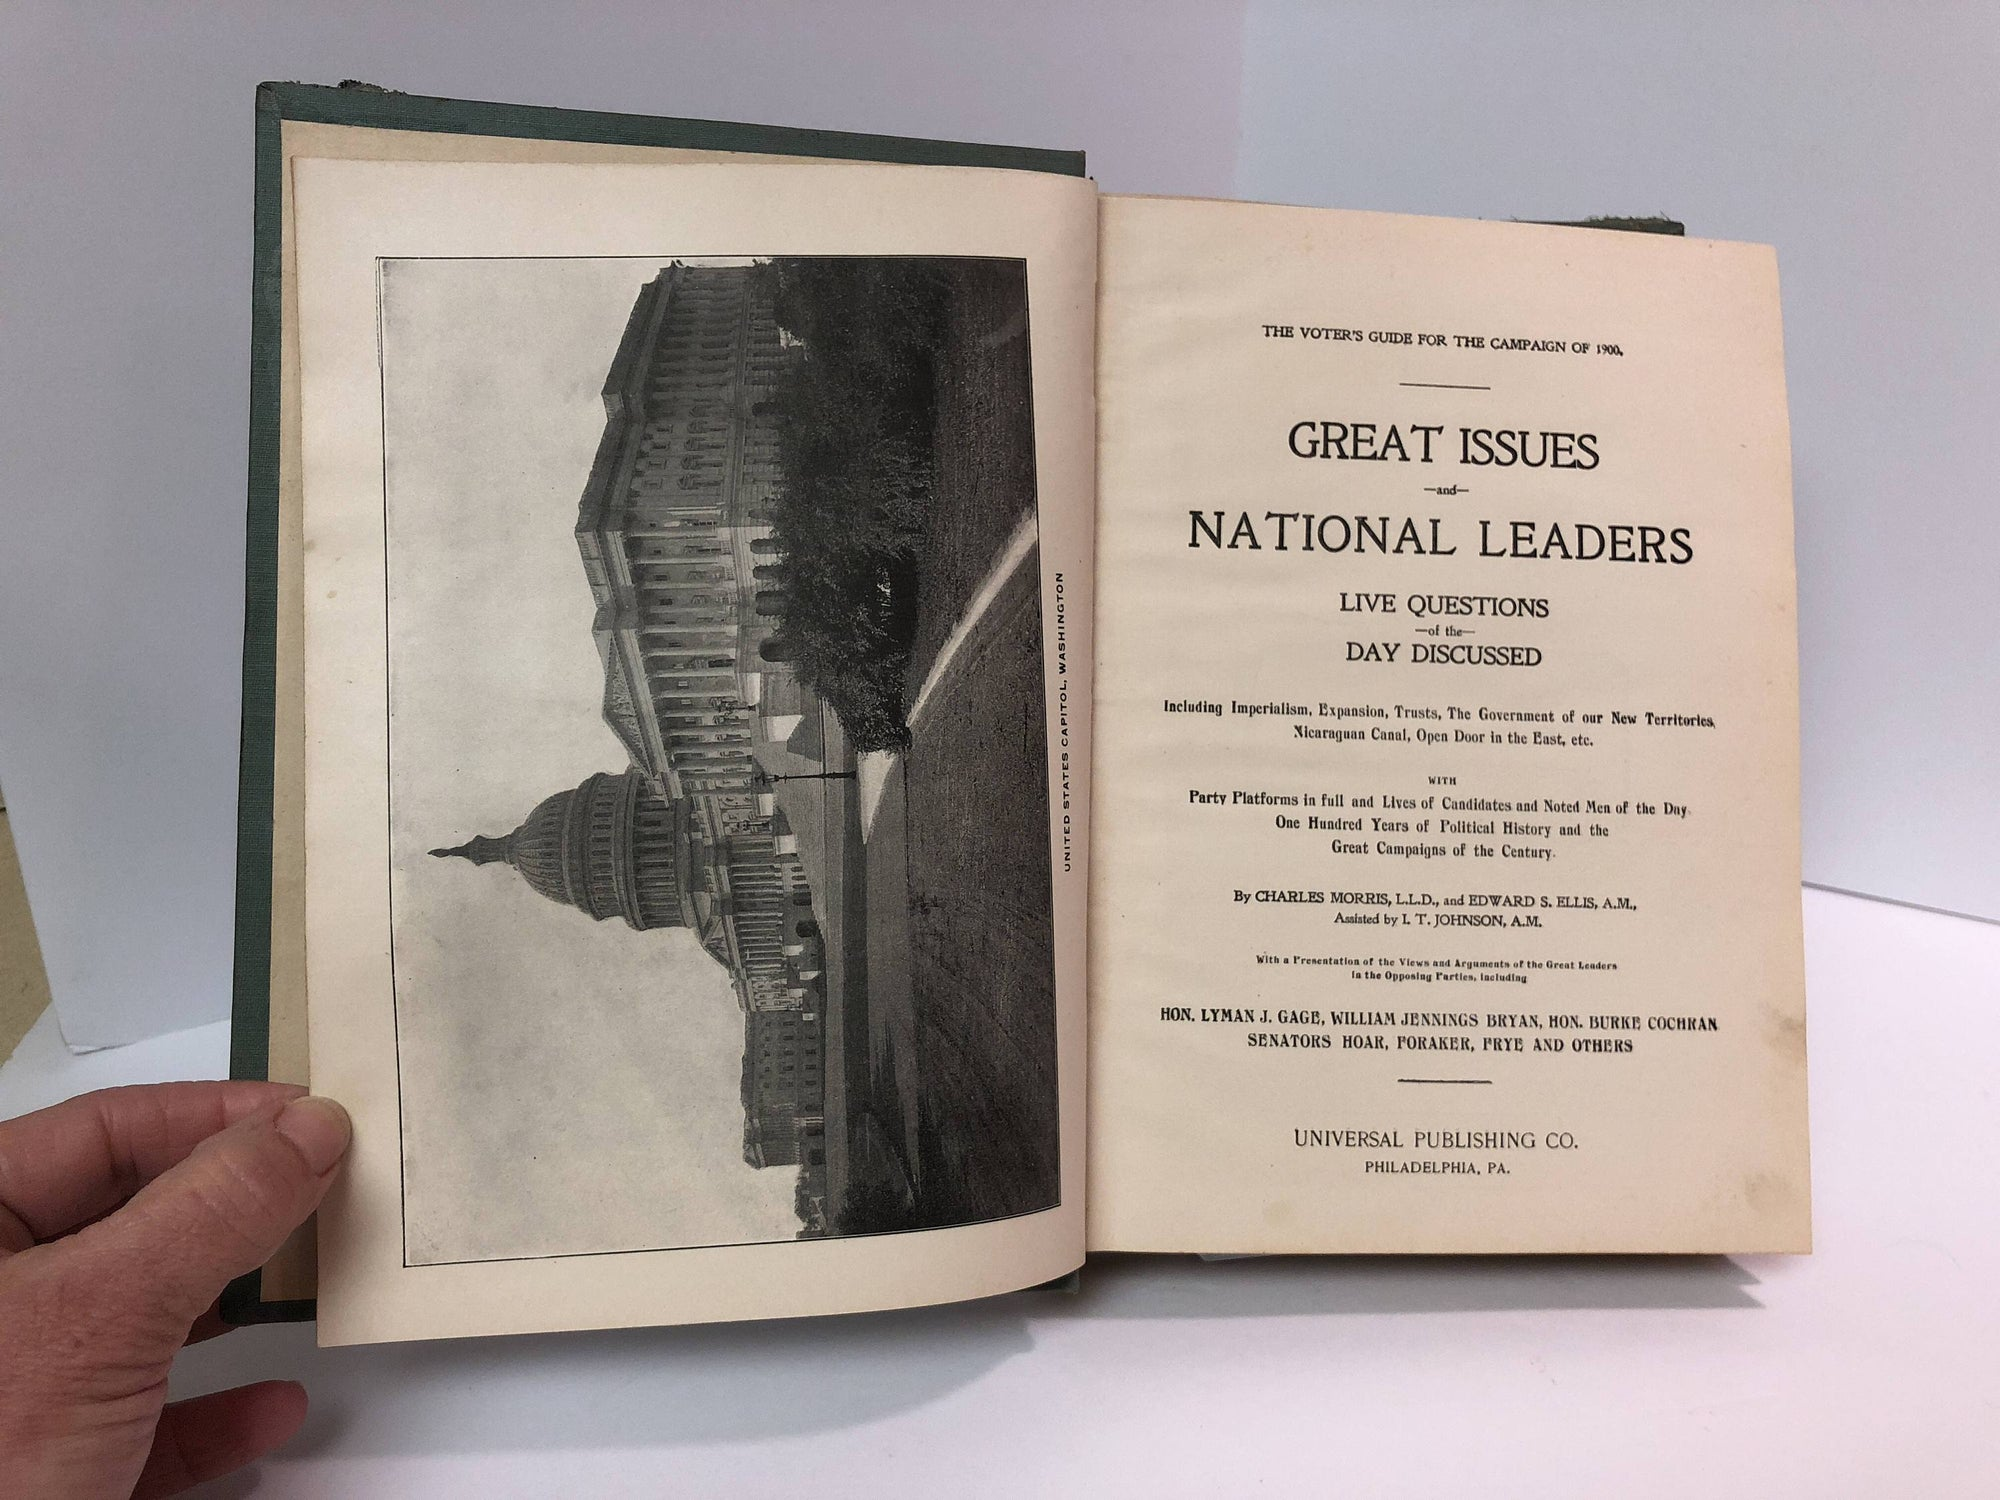 Great Issues and National Leaders The Voter's Guide for the Campaign of 1900 by Charles Morris